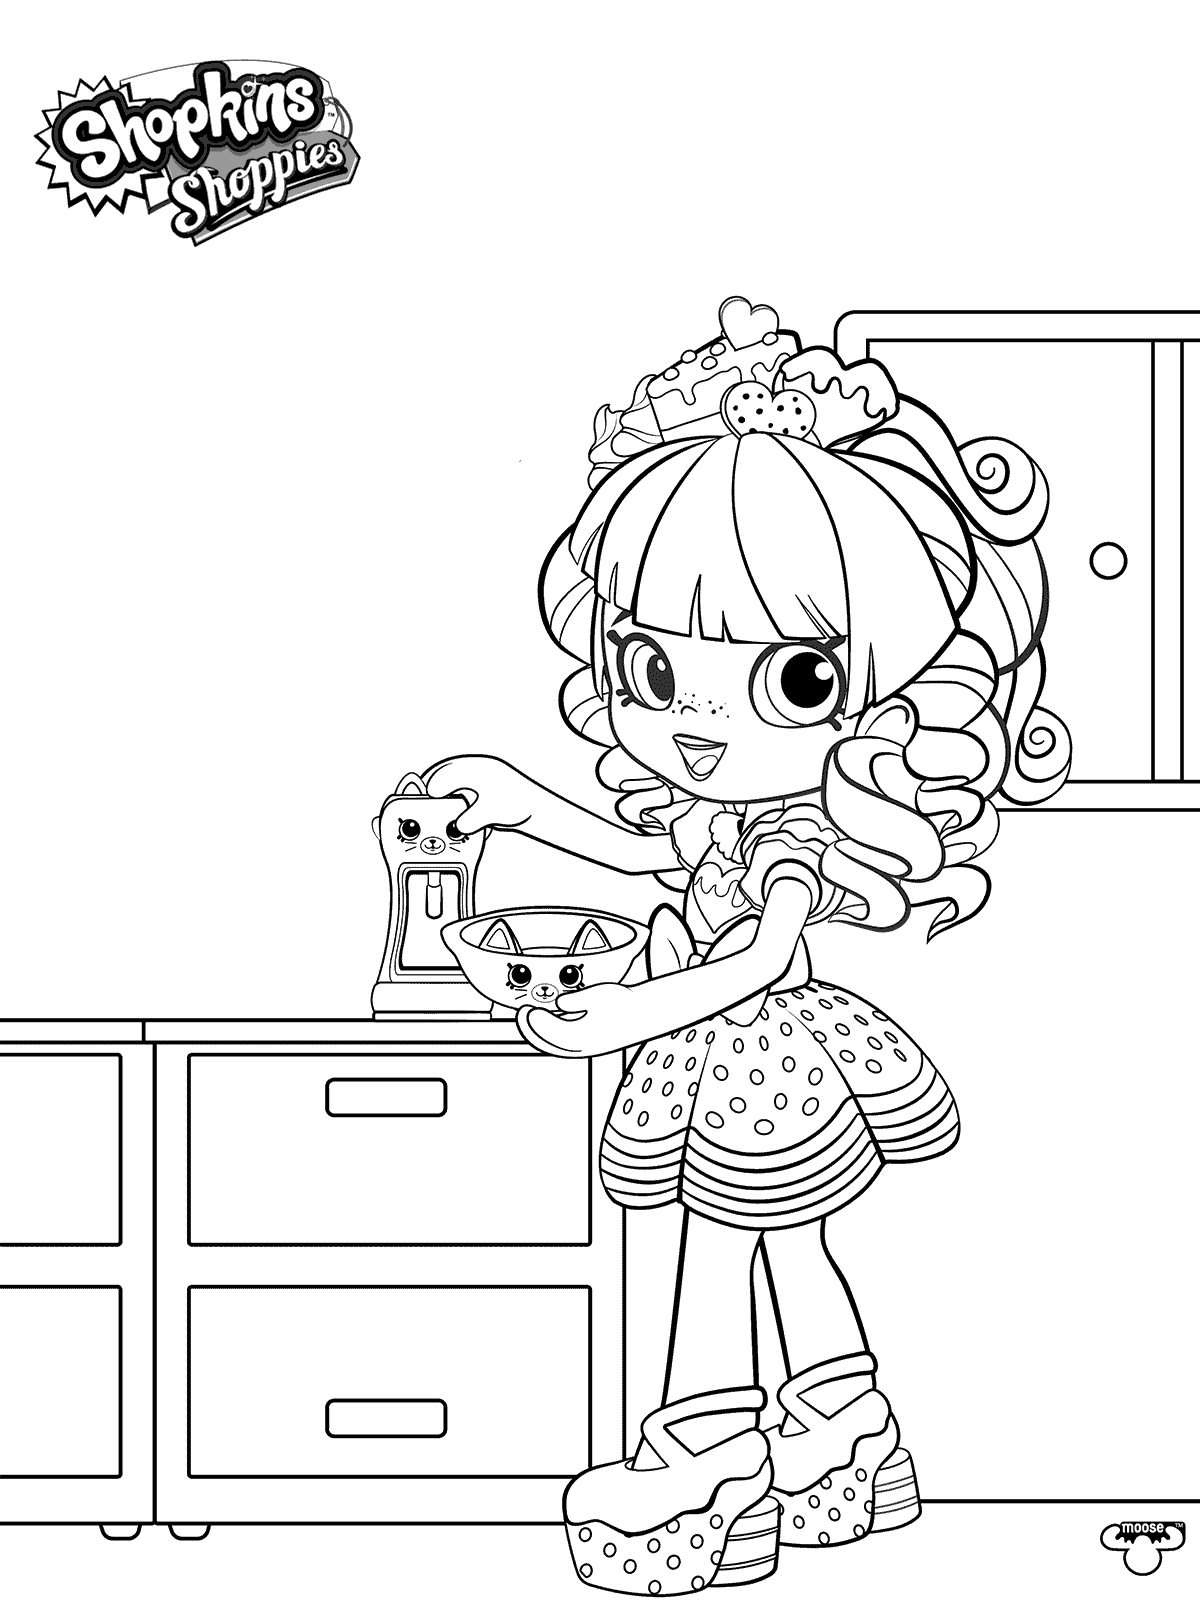 Free Shopkins Shoppies Coloring Pages Happy Places printable